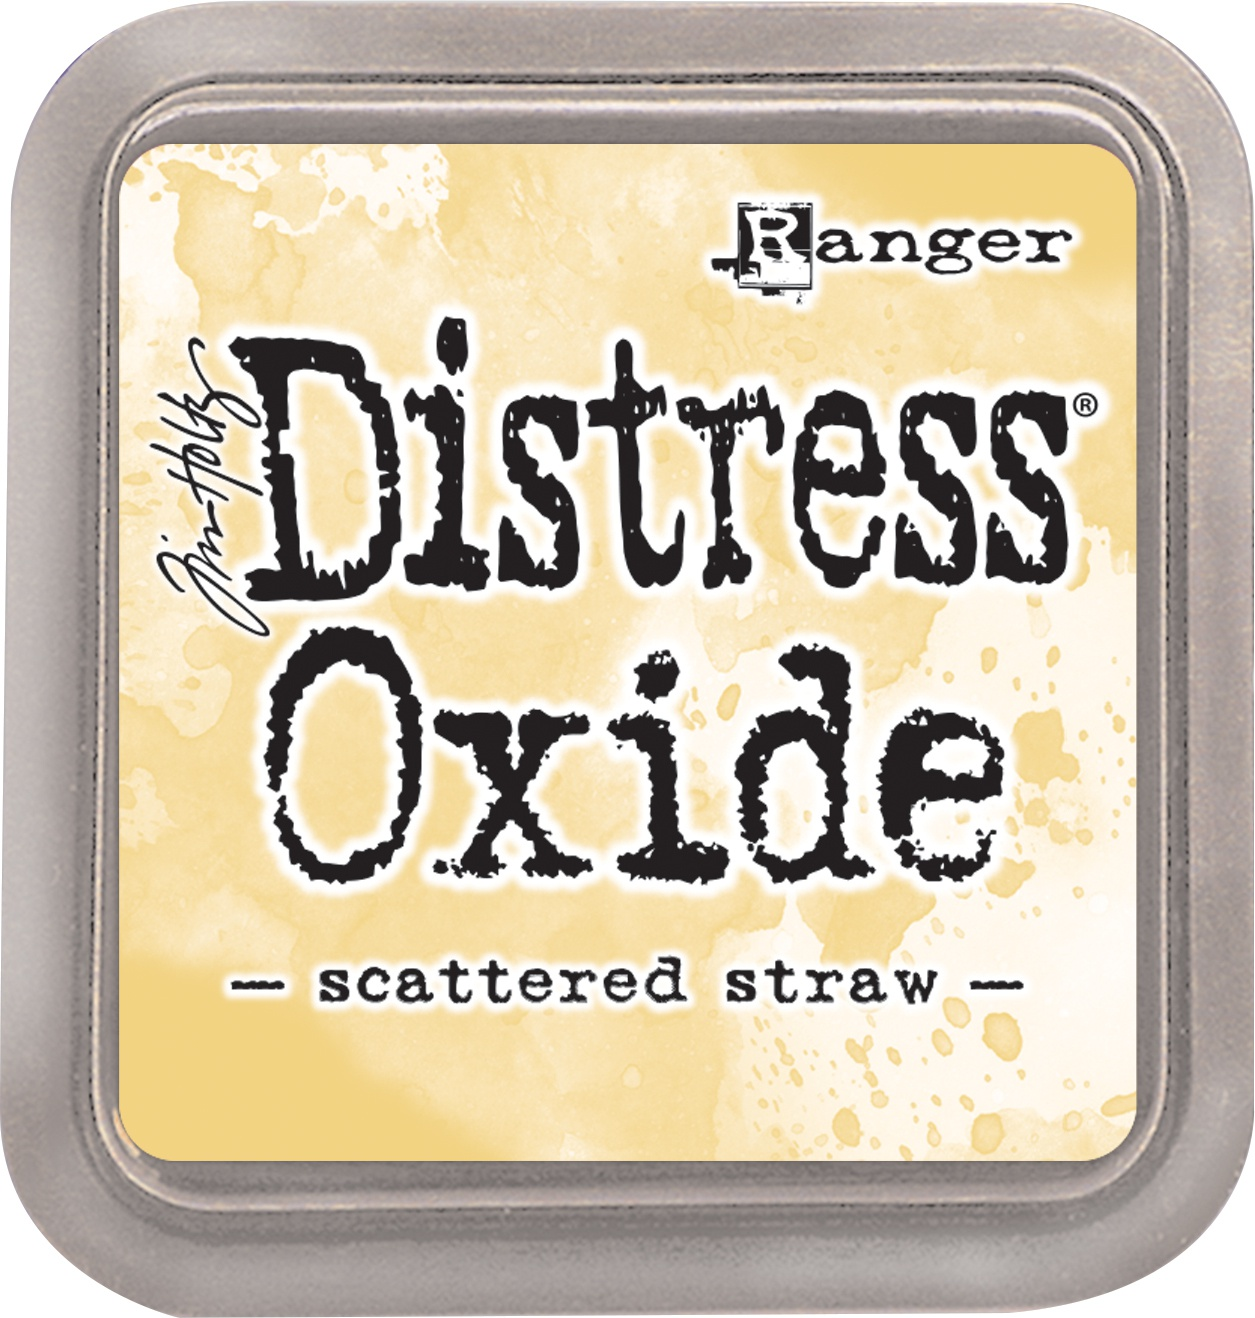 Tim Holtz Distress Oxides Ink Pad-Scattered Straw